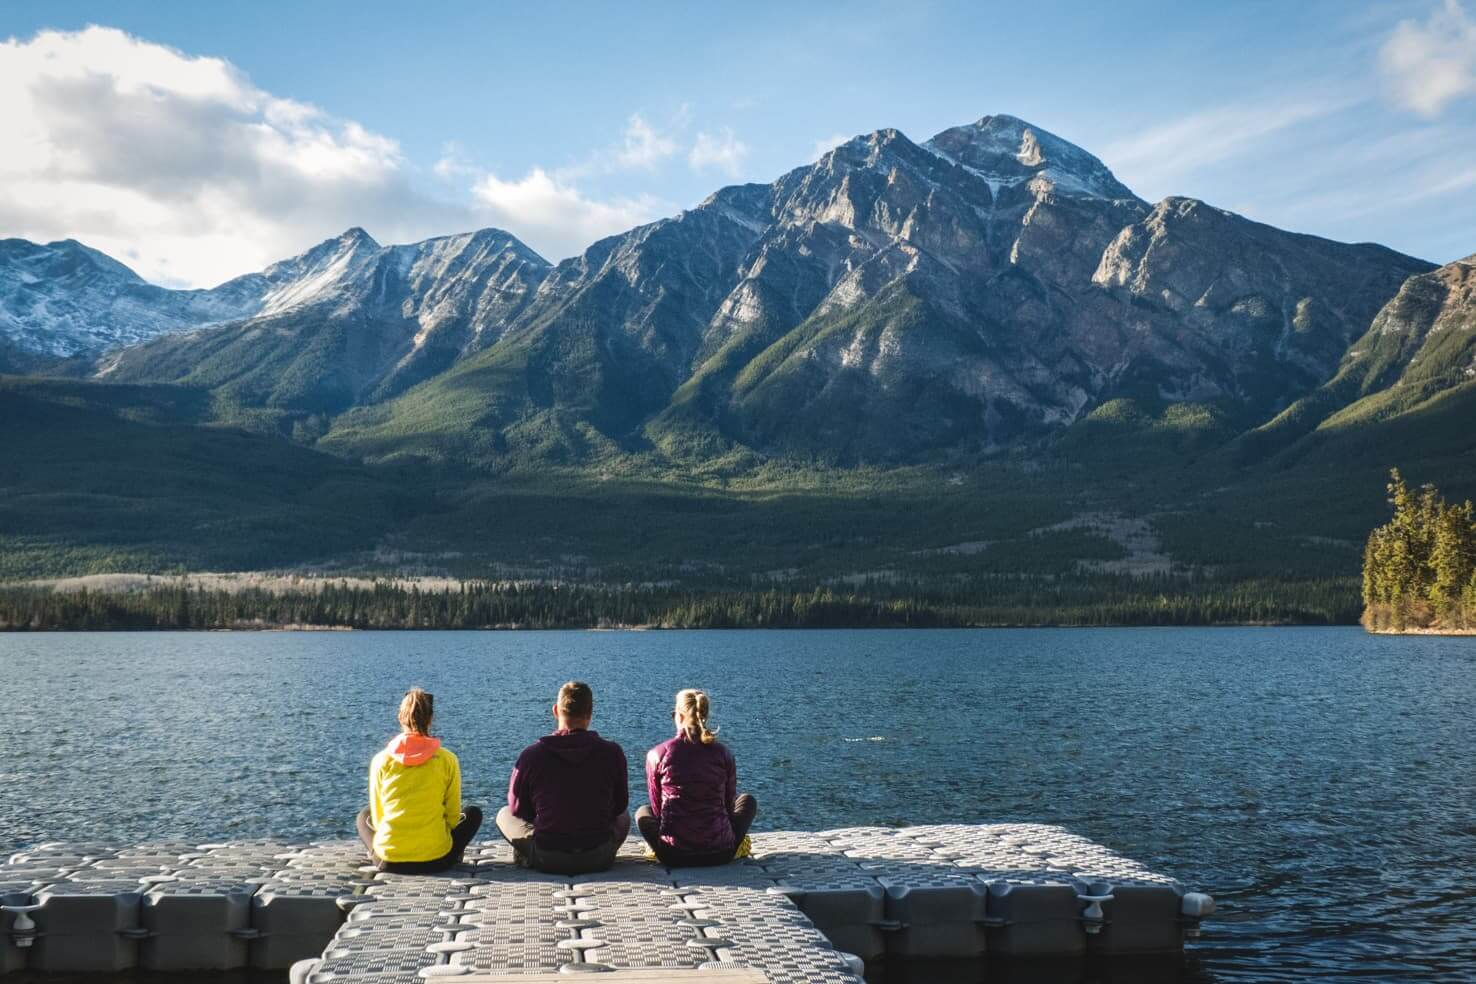 Western Canada Road Trip from Calgary to Vancouver - Pyramind Lake in Jasper